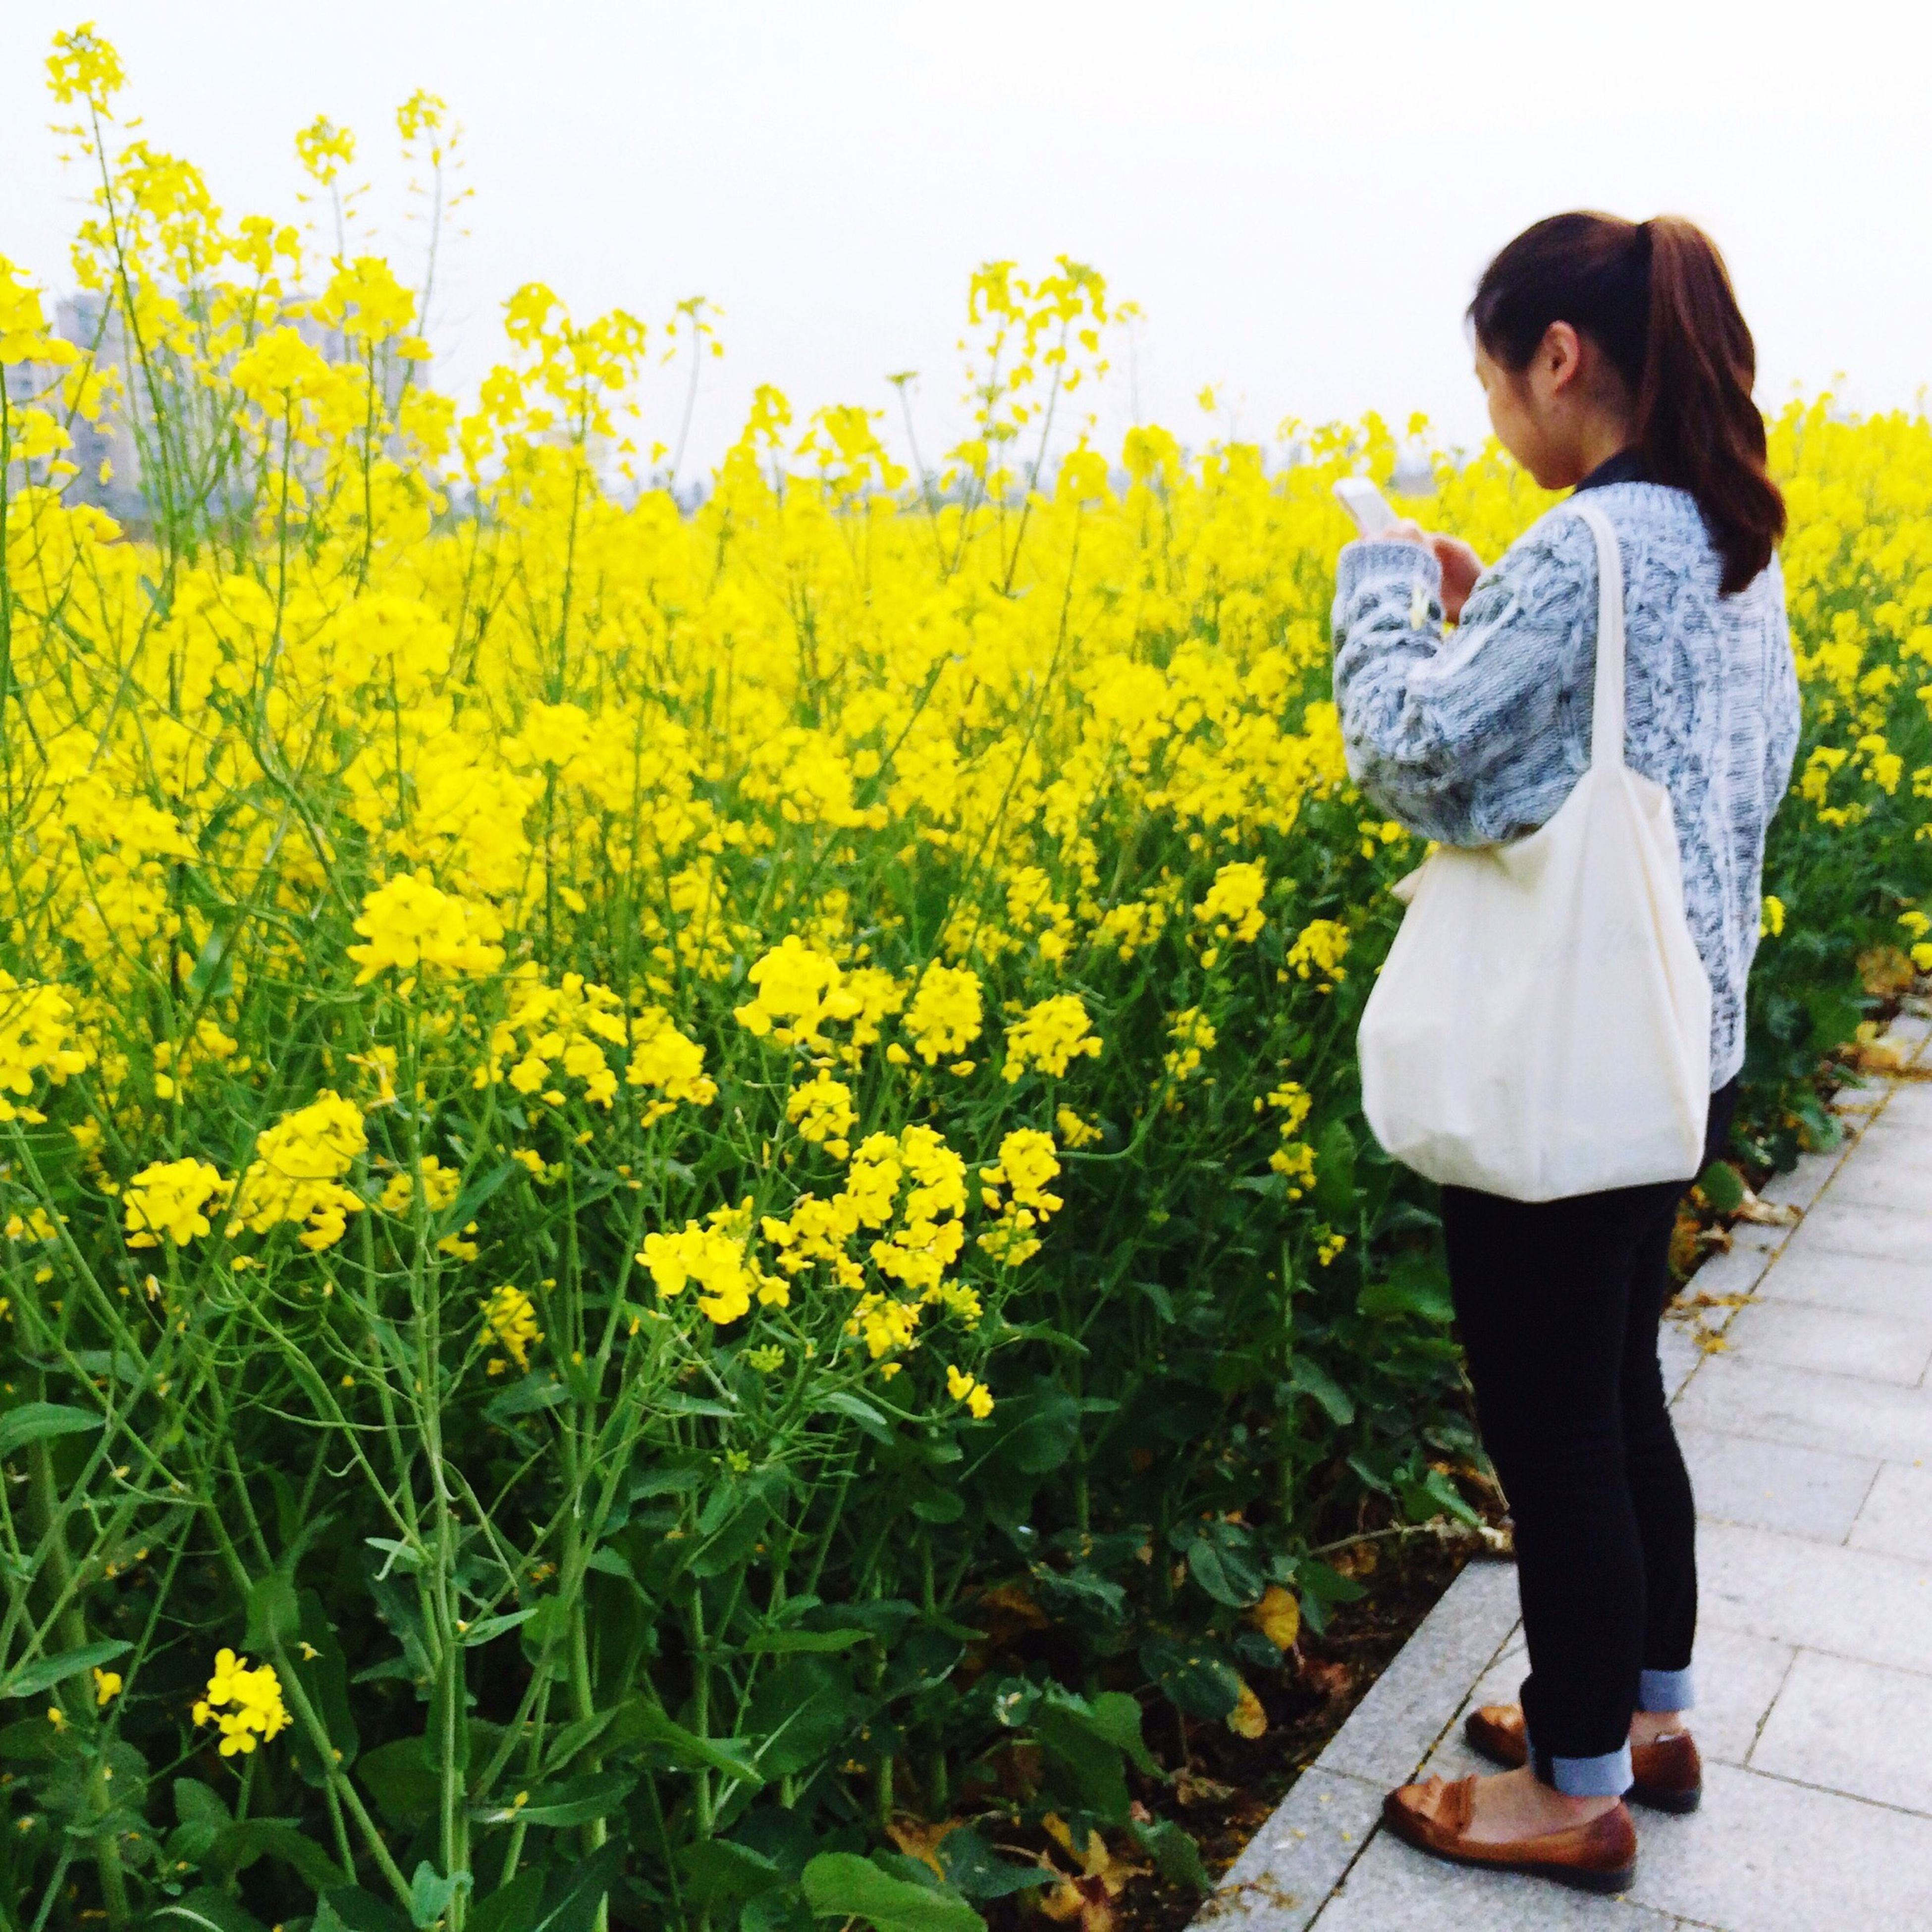 casual clothing, lifestyles, standing, leisure activity, person, flower, full length, elementary age, yellow, young adult, childhood, three quarter length, girls, plant, growth, nature, holding, young women